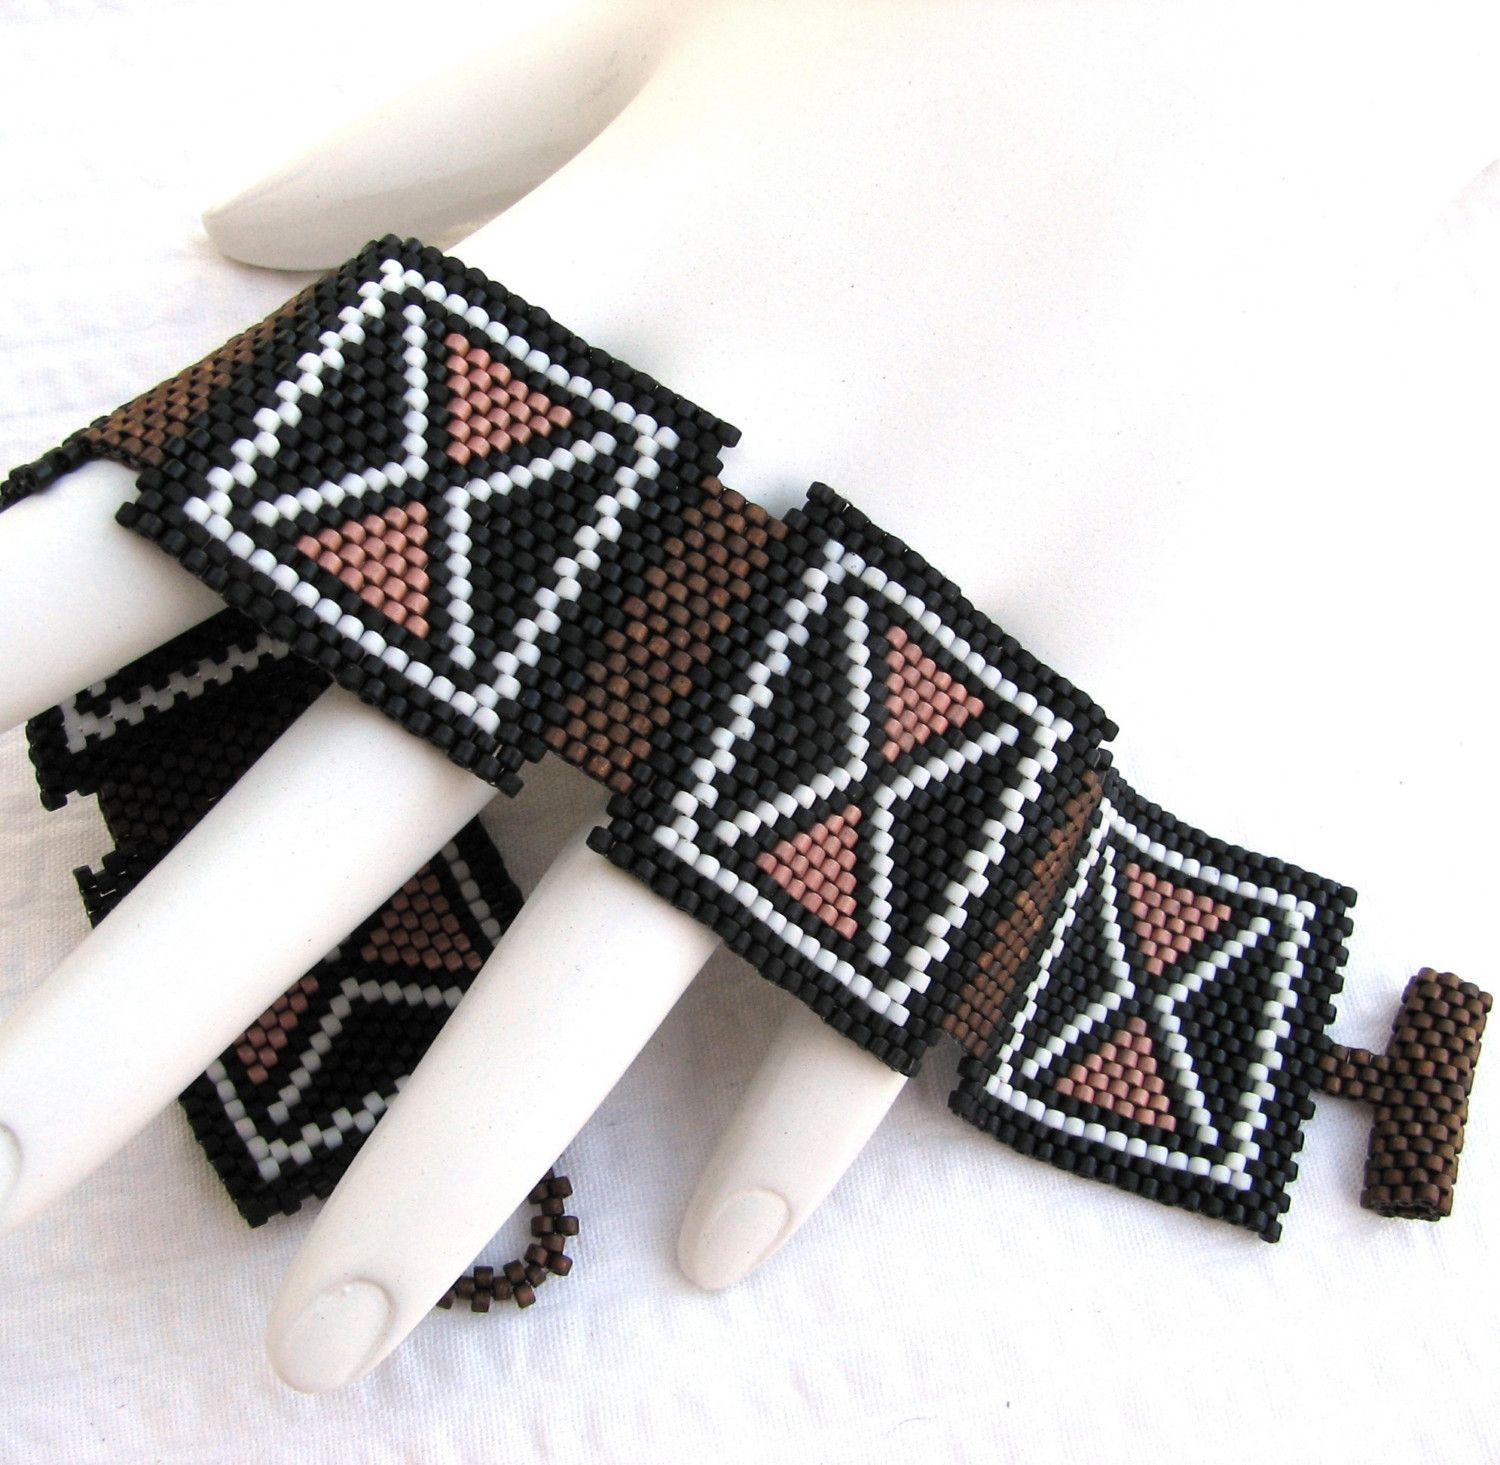 African Mudcloth Inspired Peyote Cuff II 2387 A by SandFibers